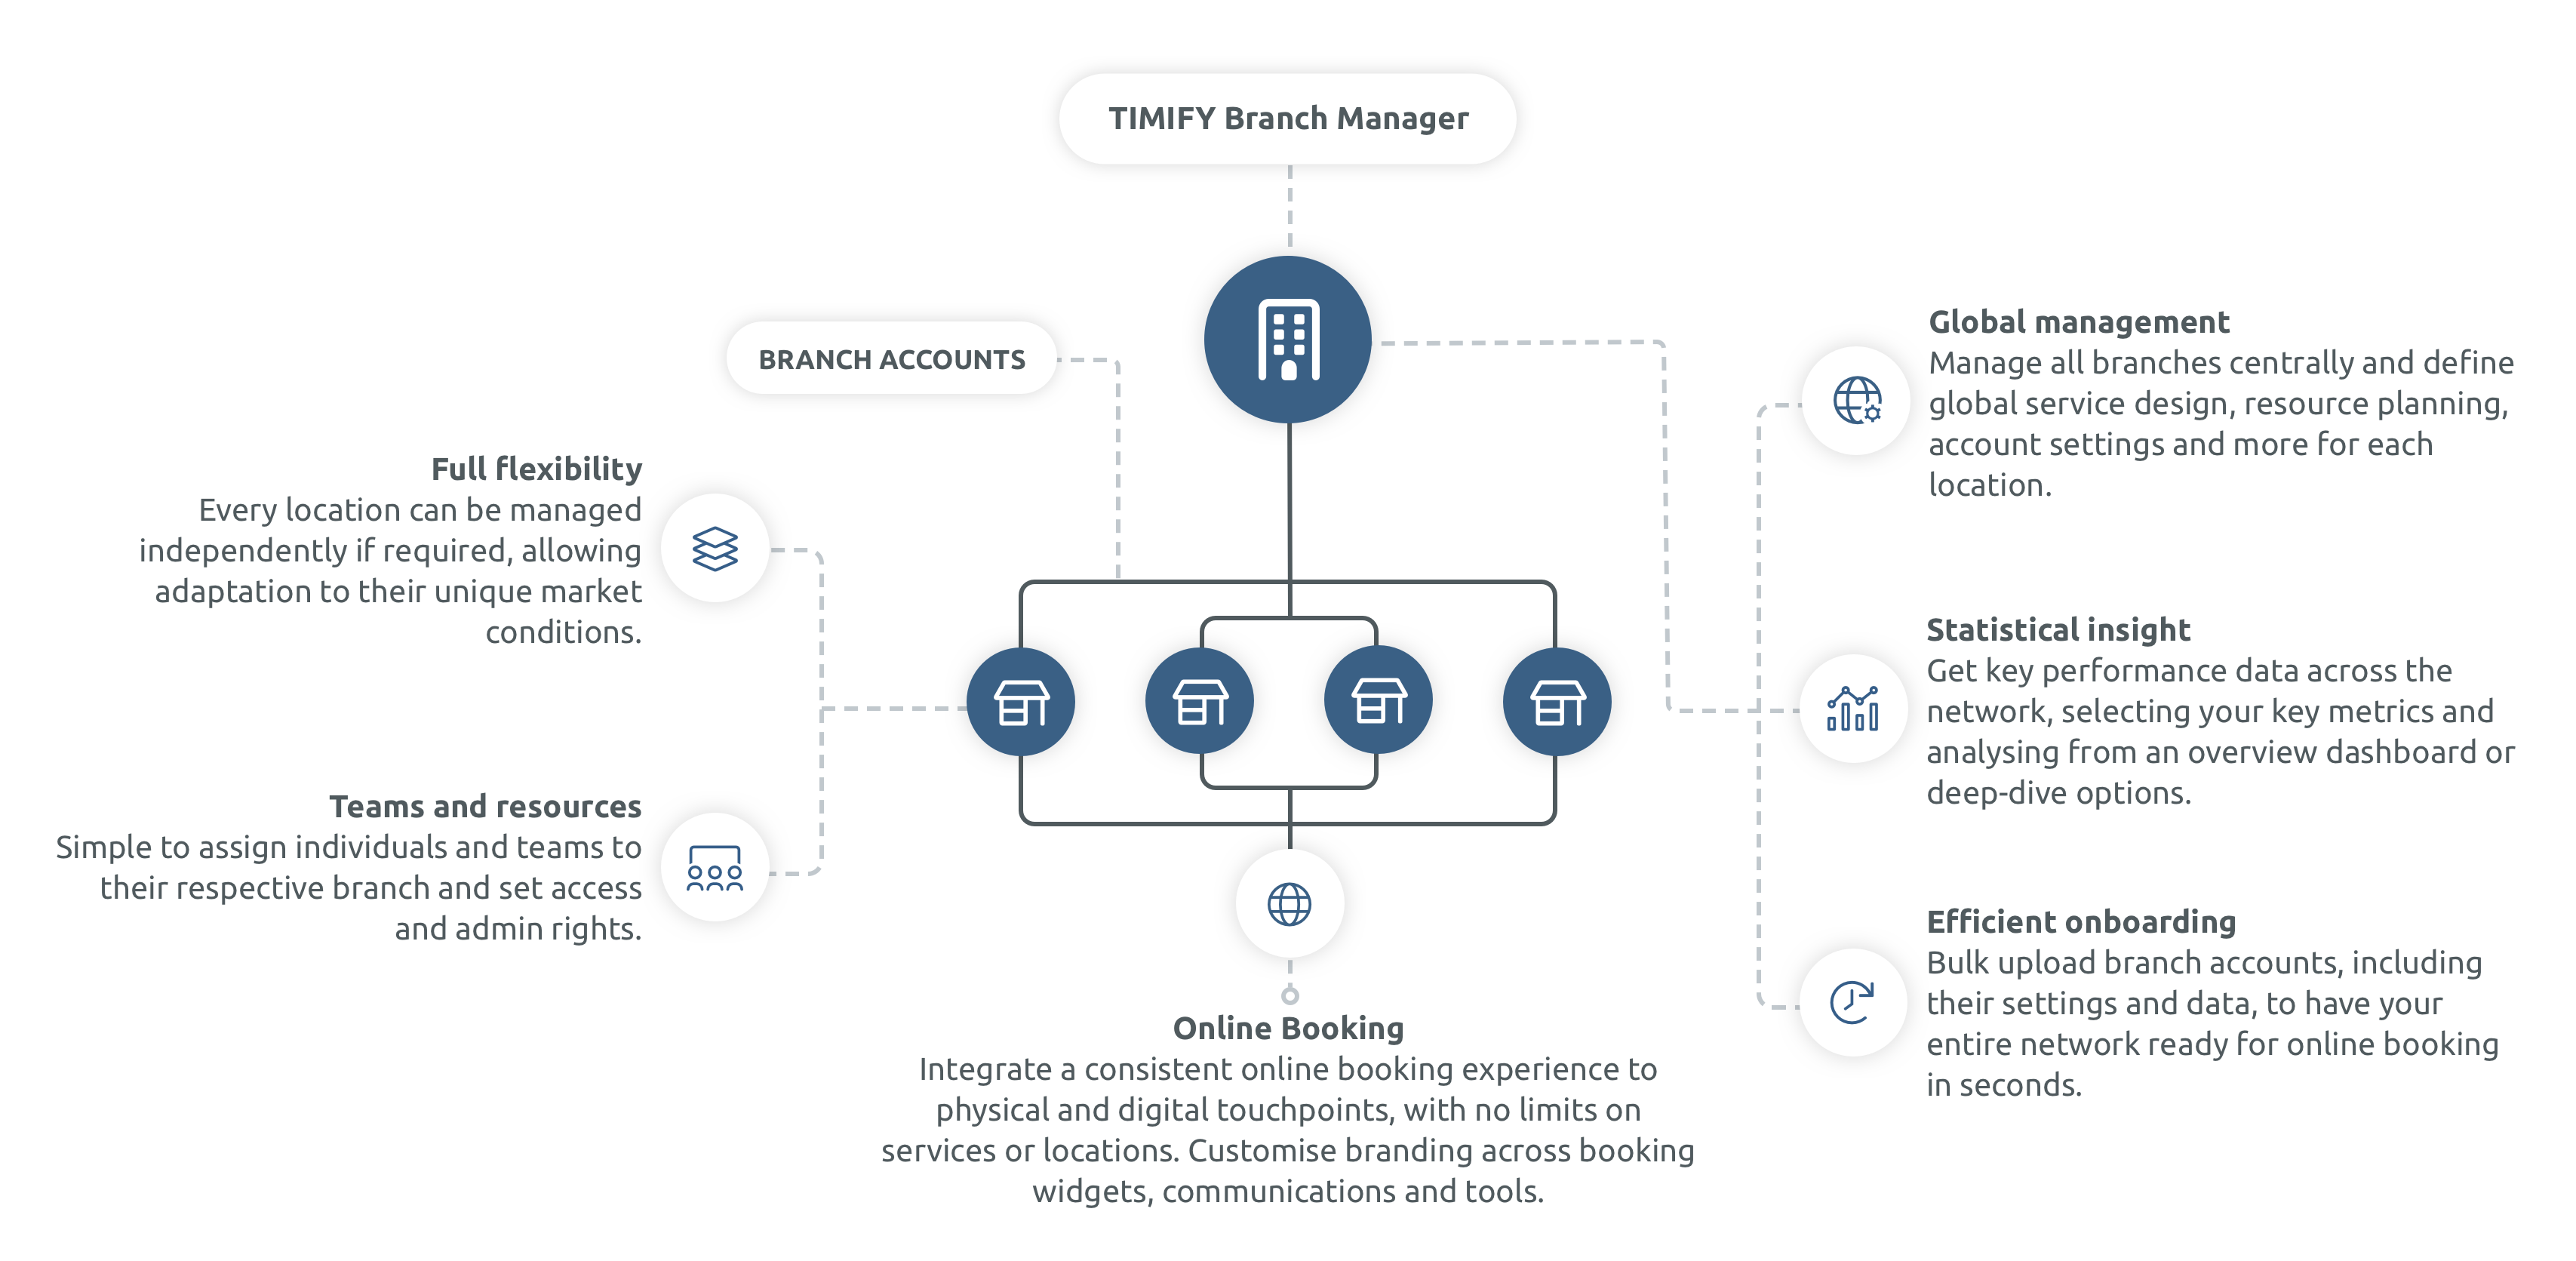 Manage your locations on a global and individual level with timify